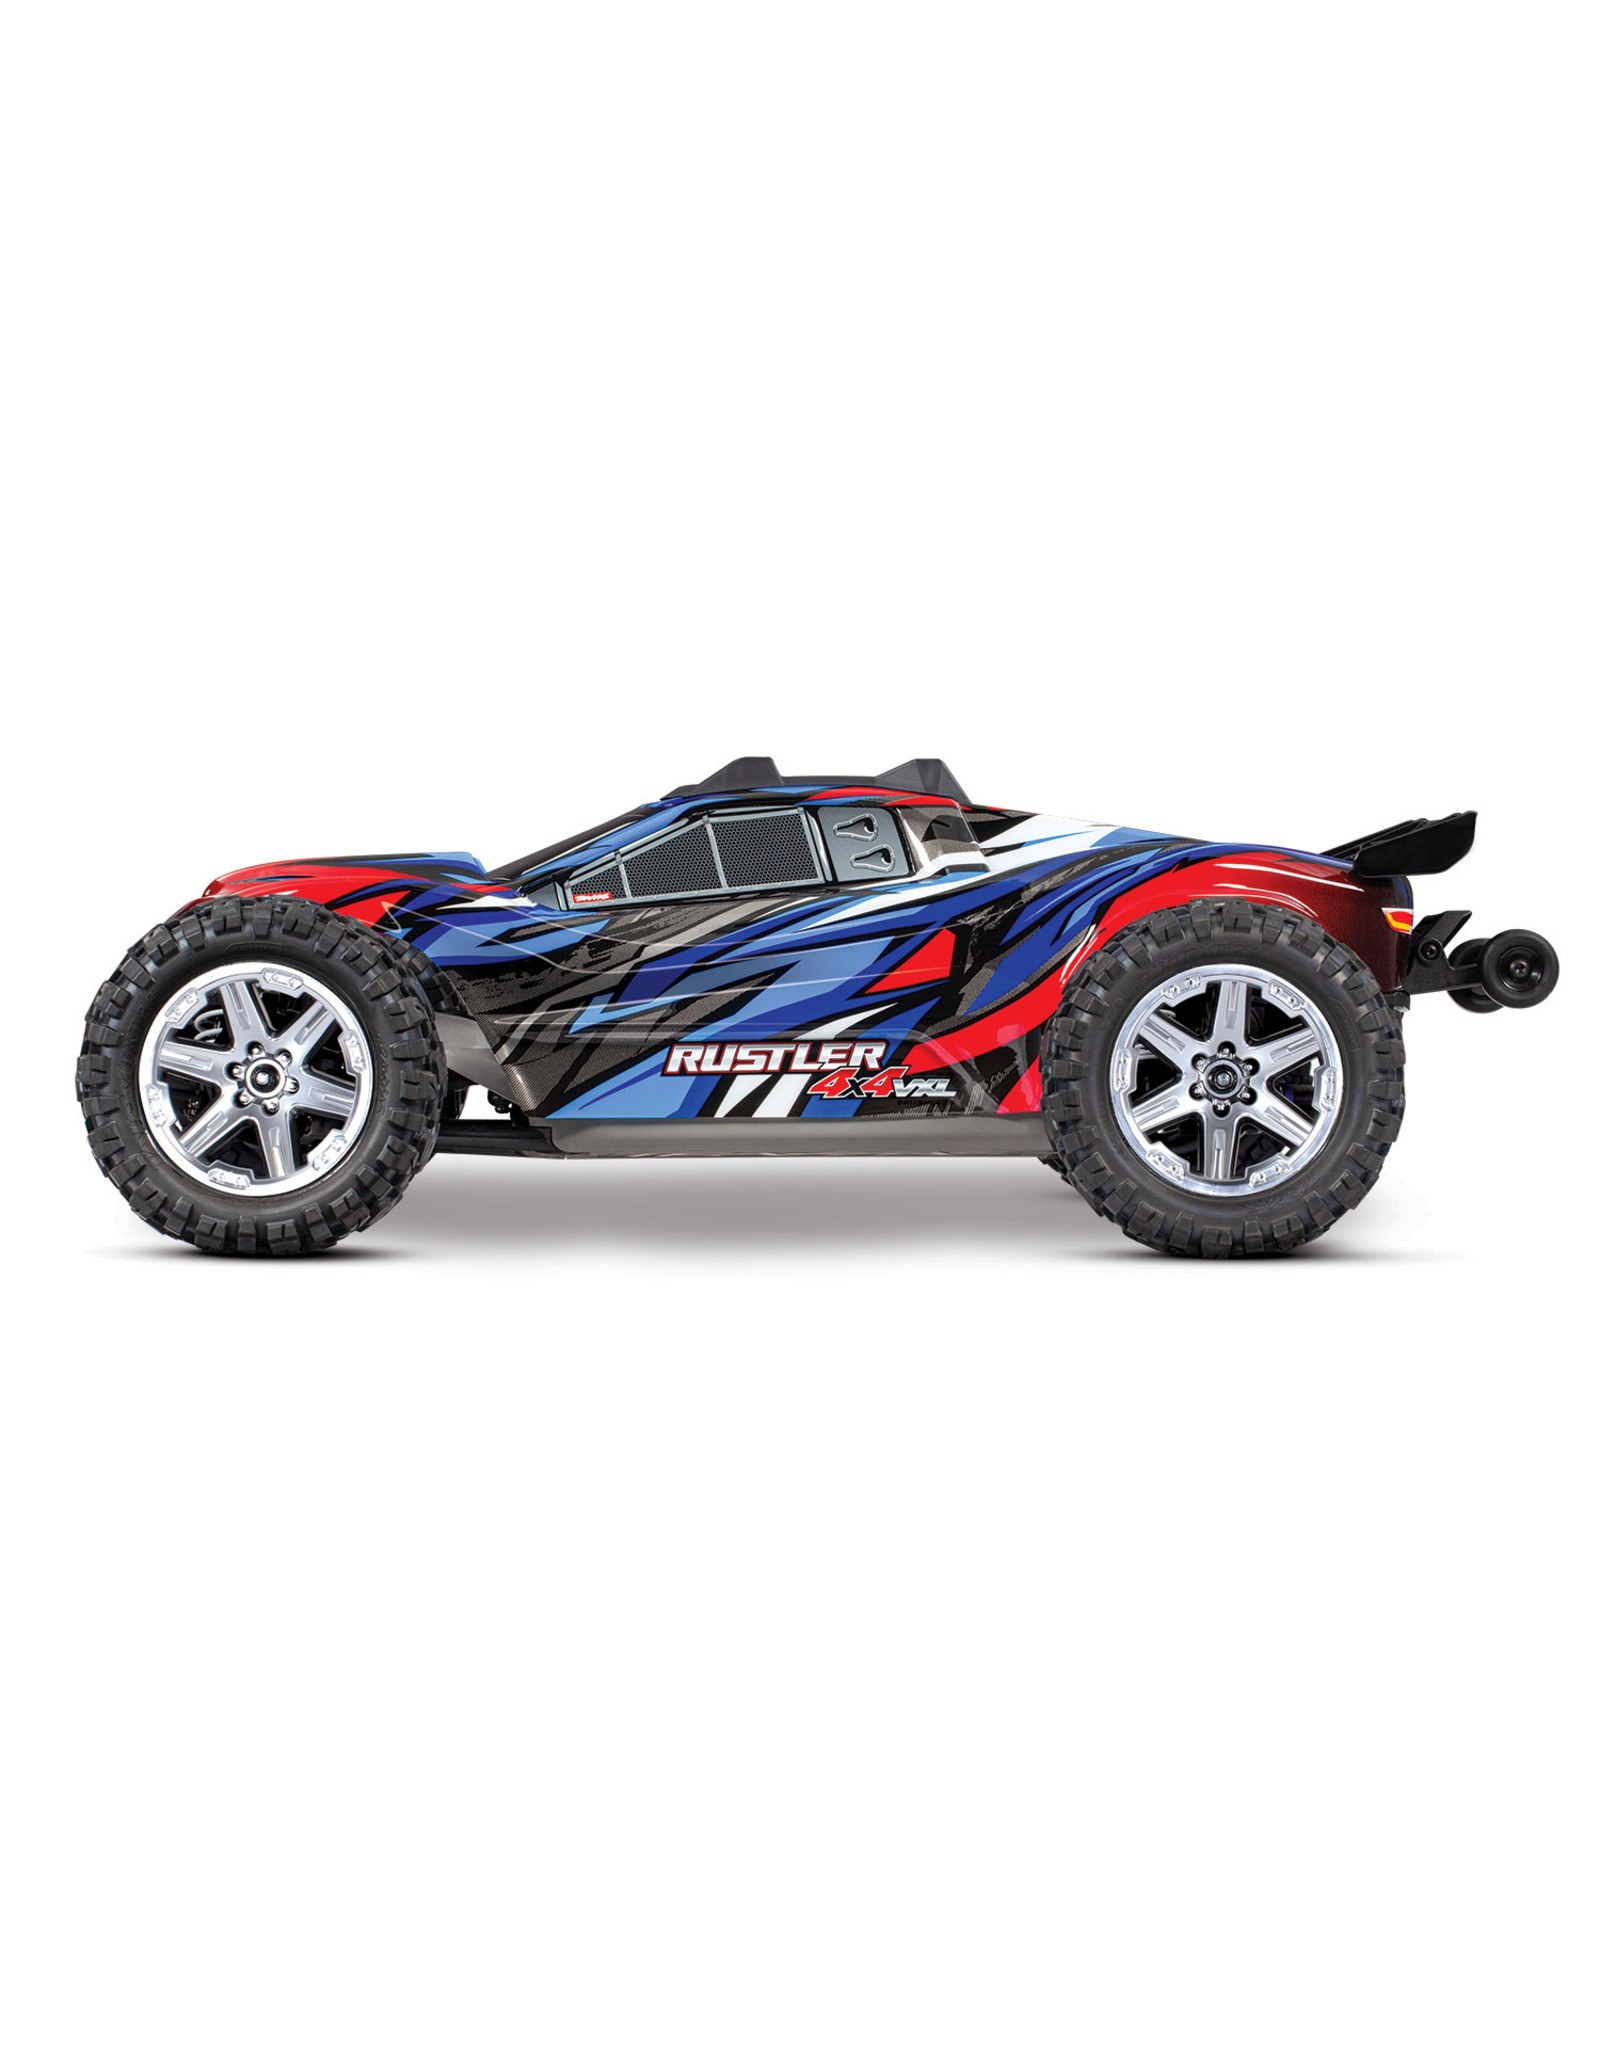 Traxxas 1/10 Rustler 4x4 VXL Brushless (BLUE): No Battery, No Charger (67076-4)